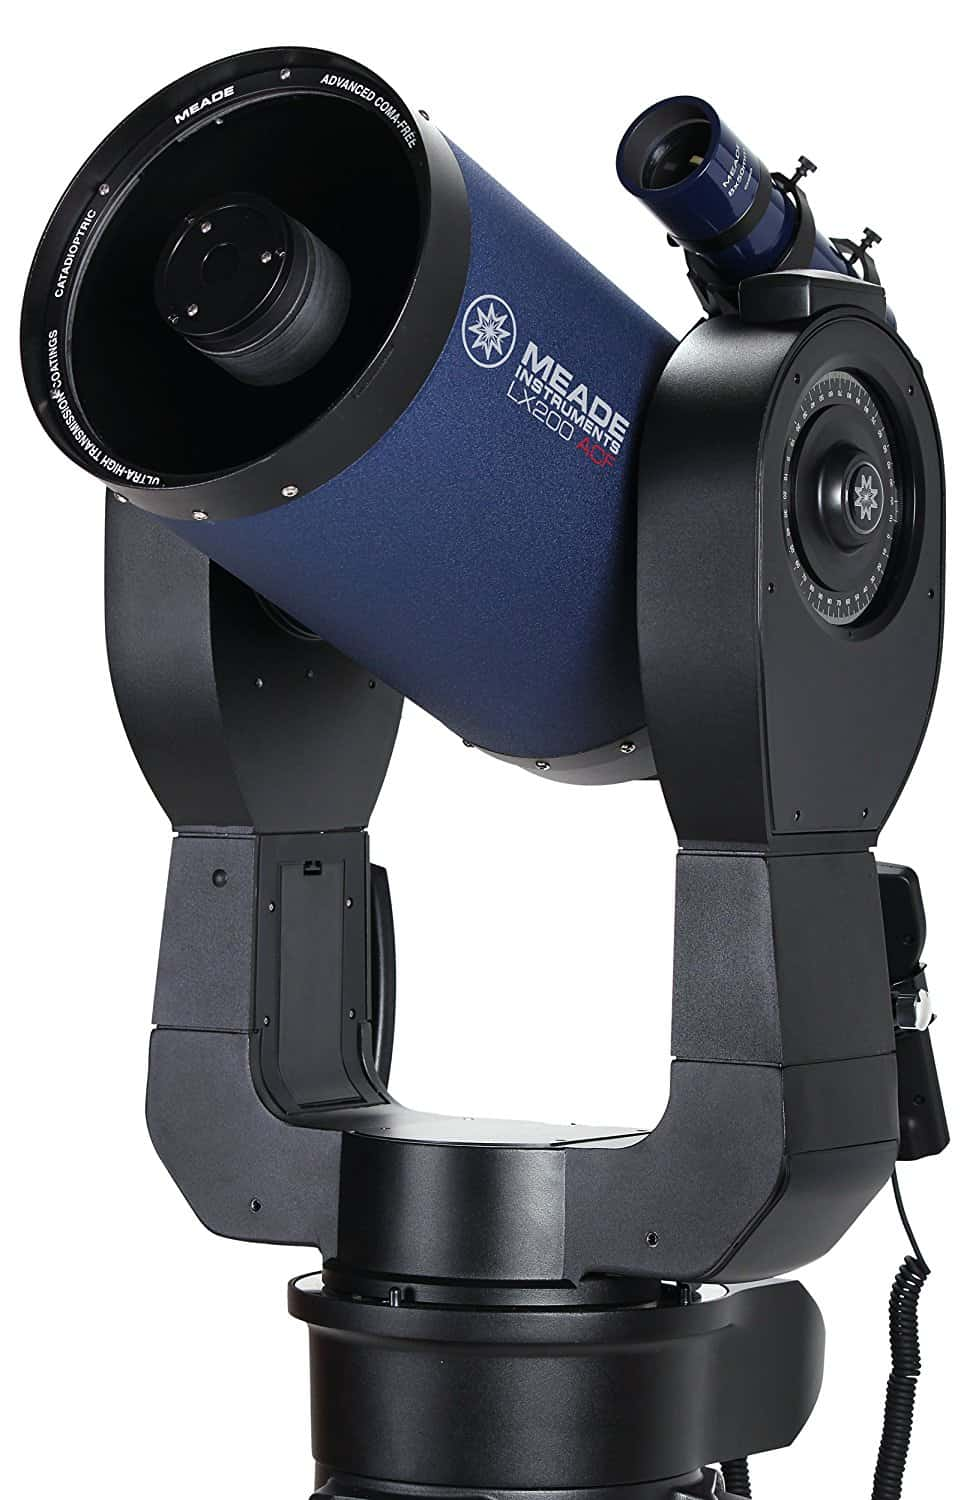 Meade LX200 review